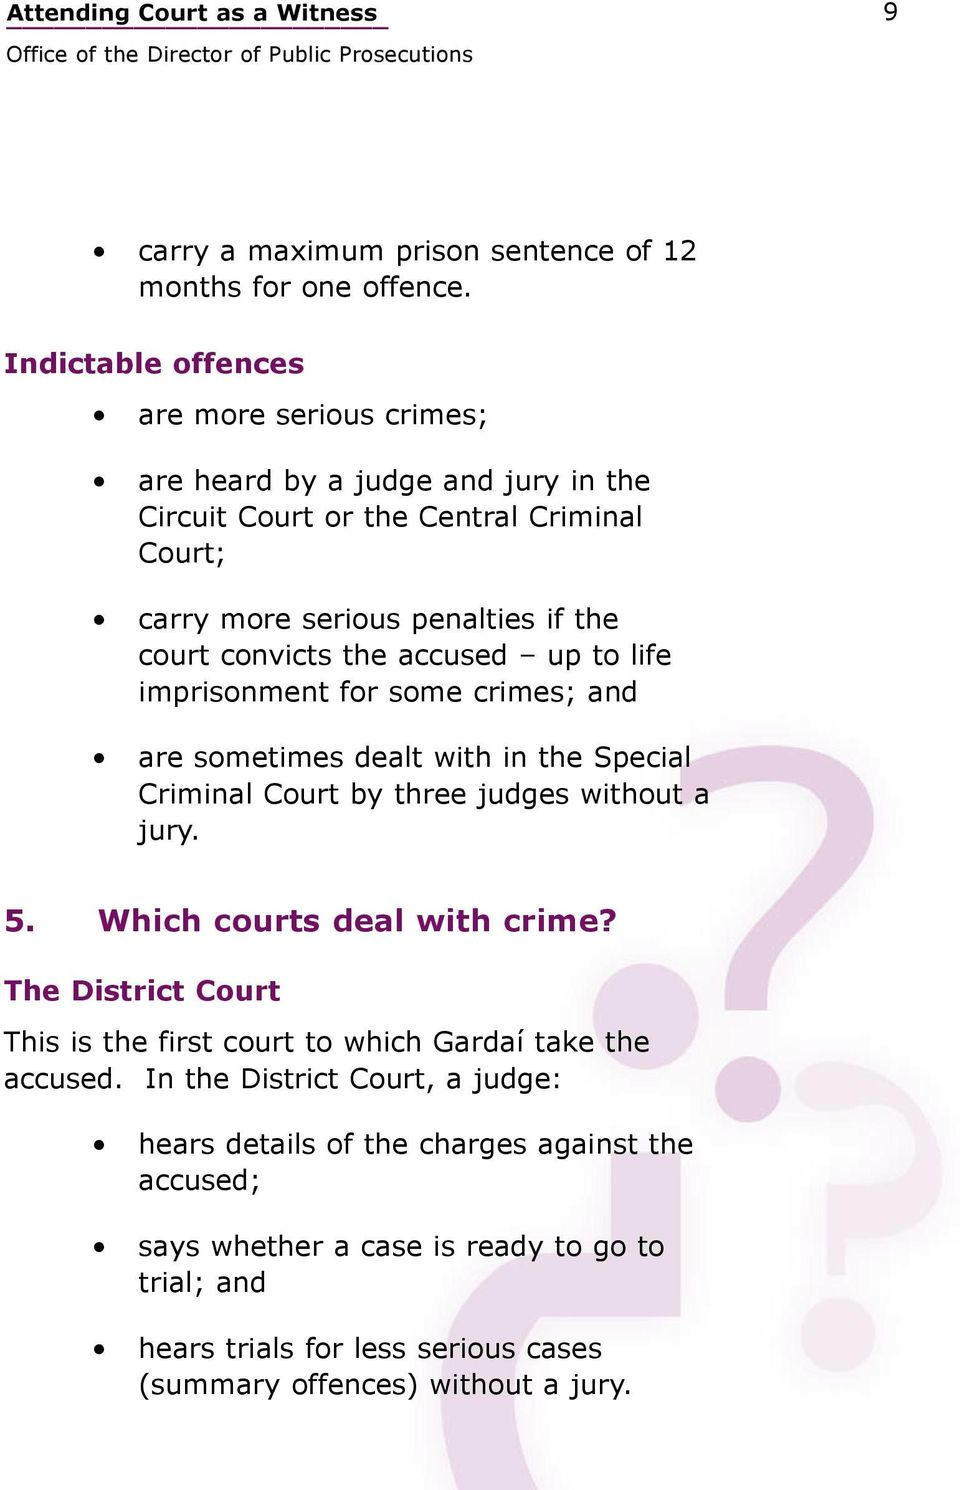 accused up to life imprisonment for some crimes; and are sometimes dealt with in the Special Criminal Court by three judges without a jury. 5. Which courts deal with crime?